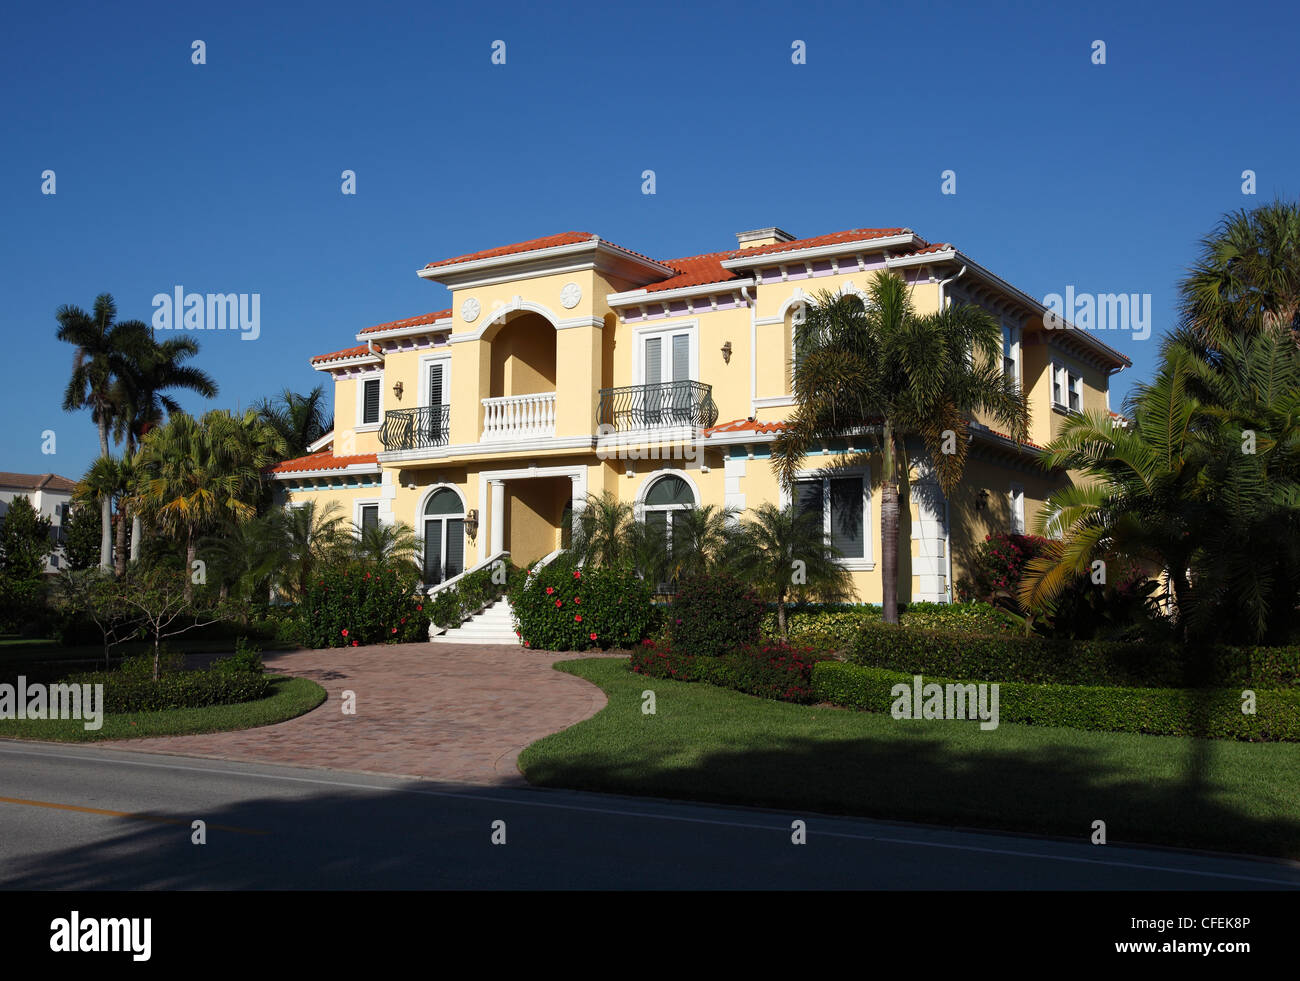 Large house in expensive neighborhood near the beach, Naples, Florida - Stock Image